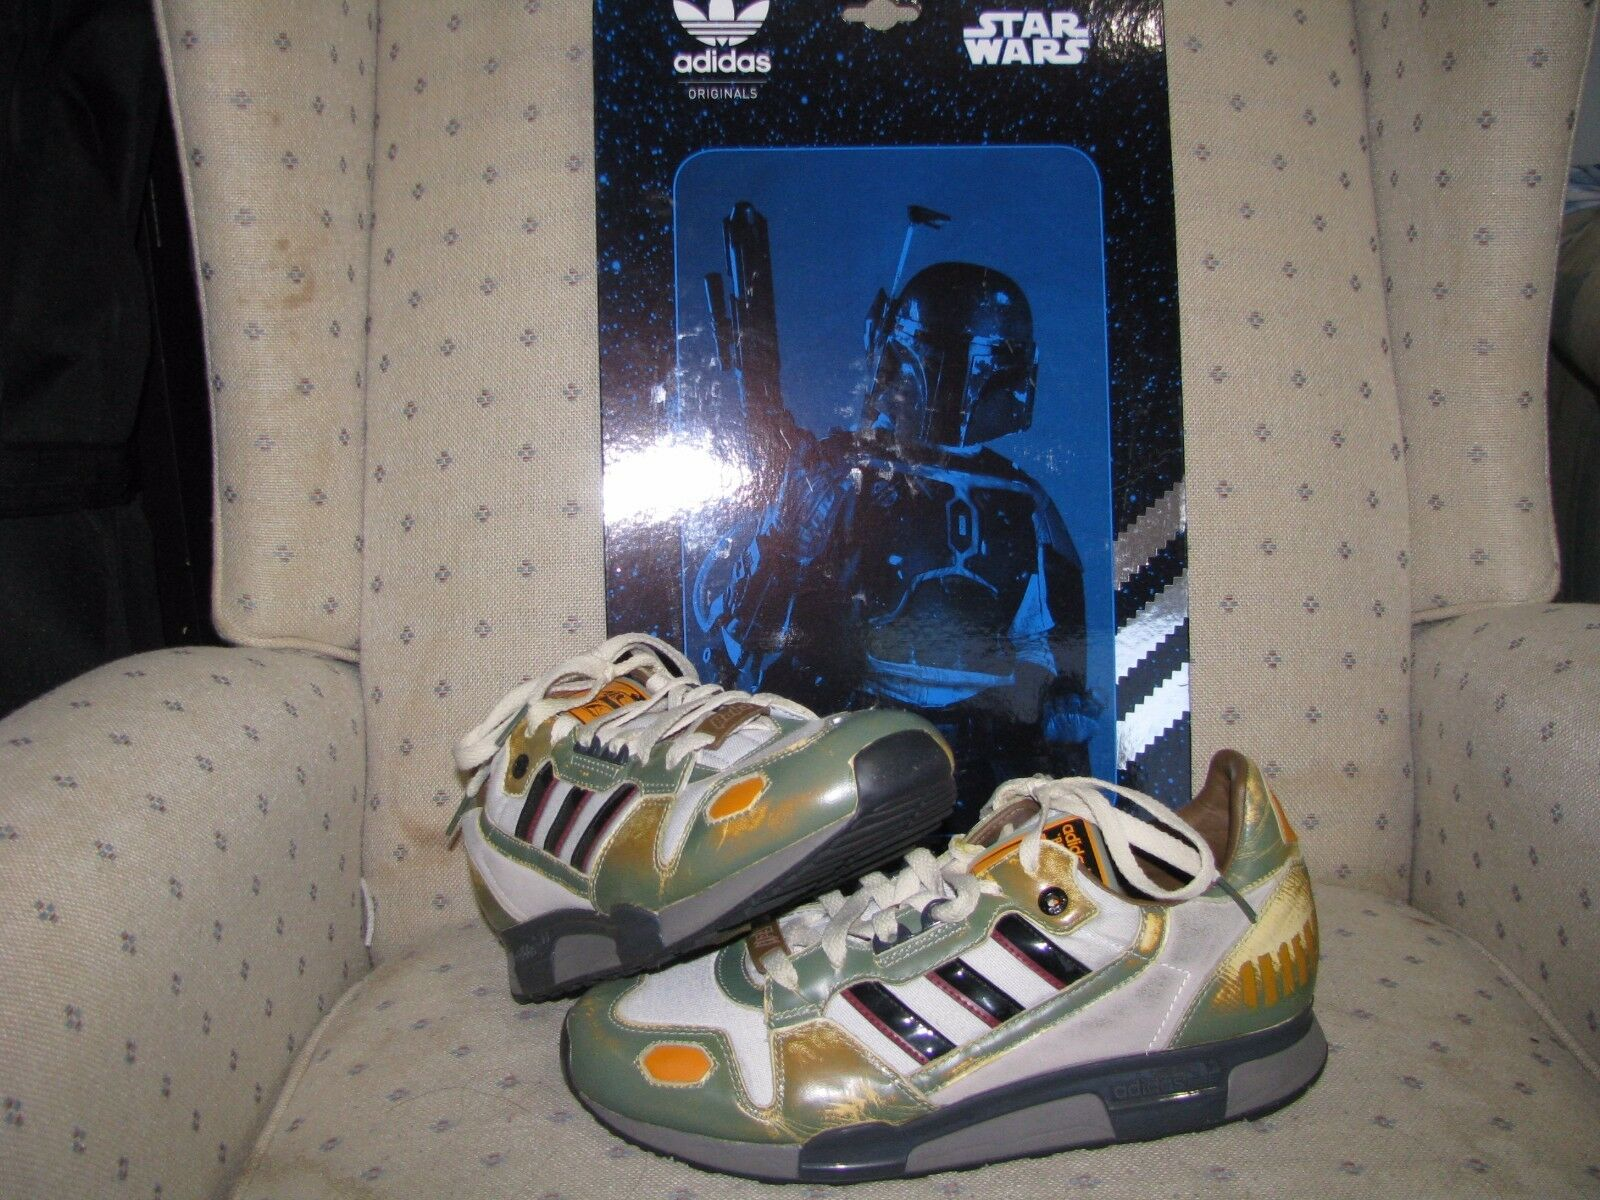 Adidas originale star wars boba fett zx800 han solo skywalker rogue vader saber